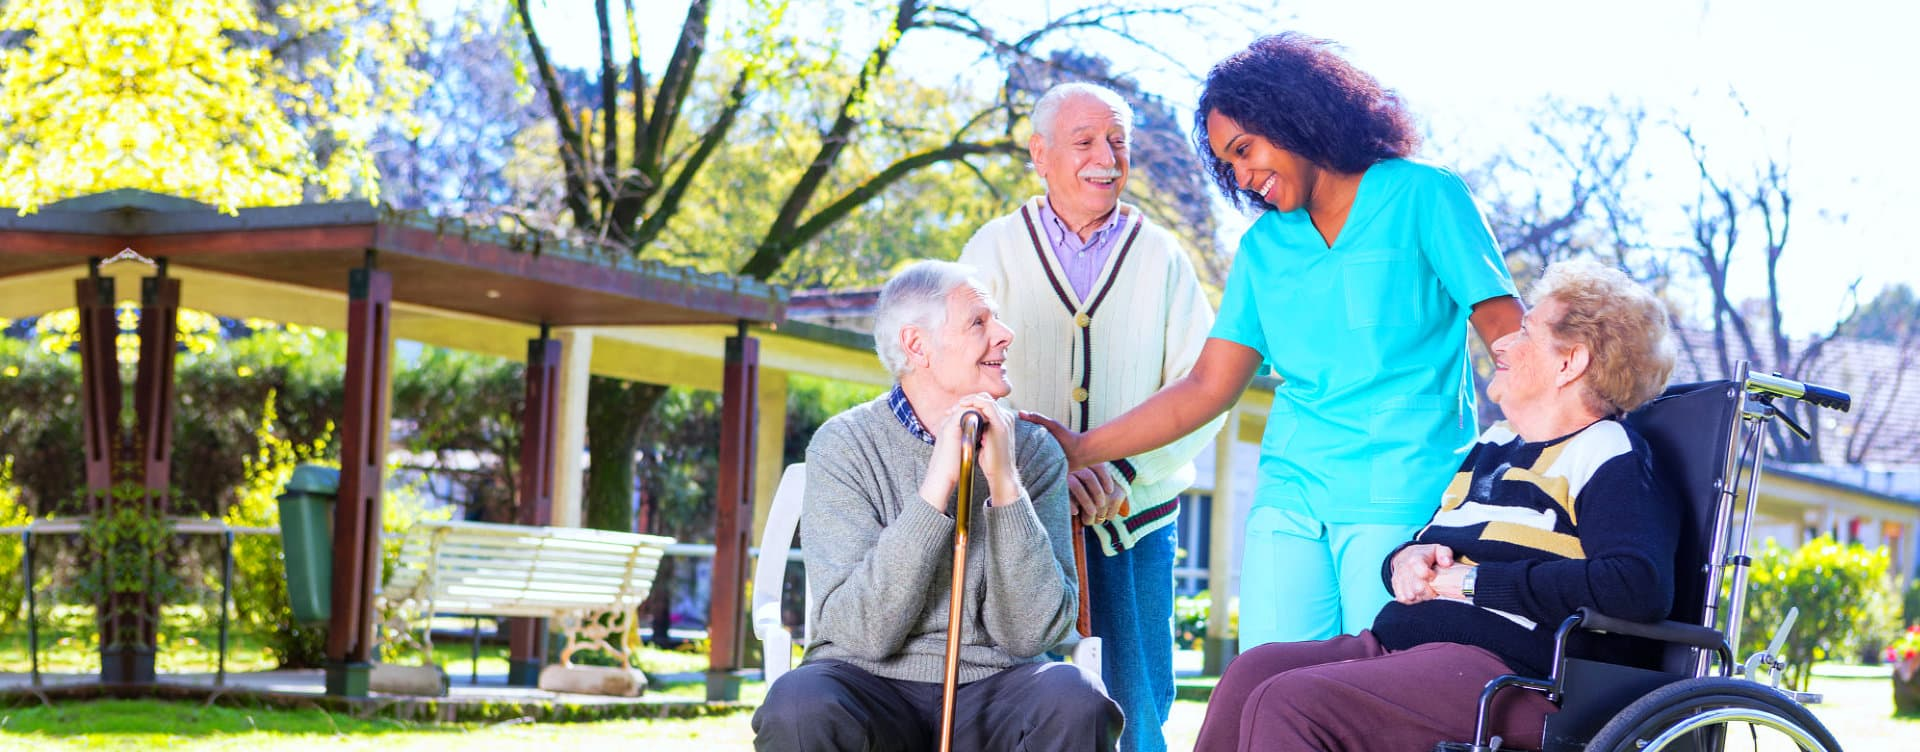 group of senior patients and a caregiver smiling